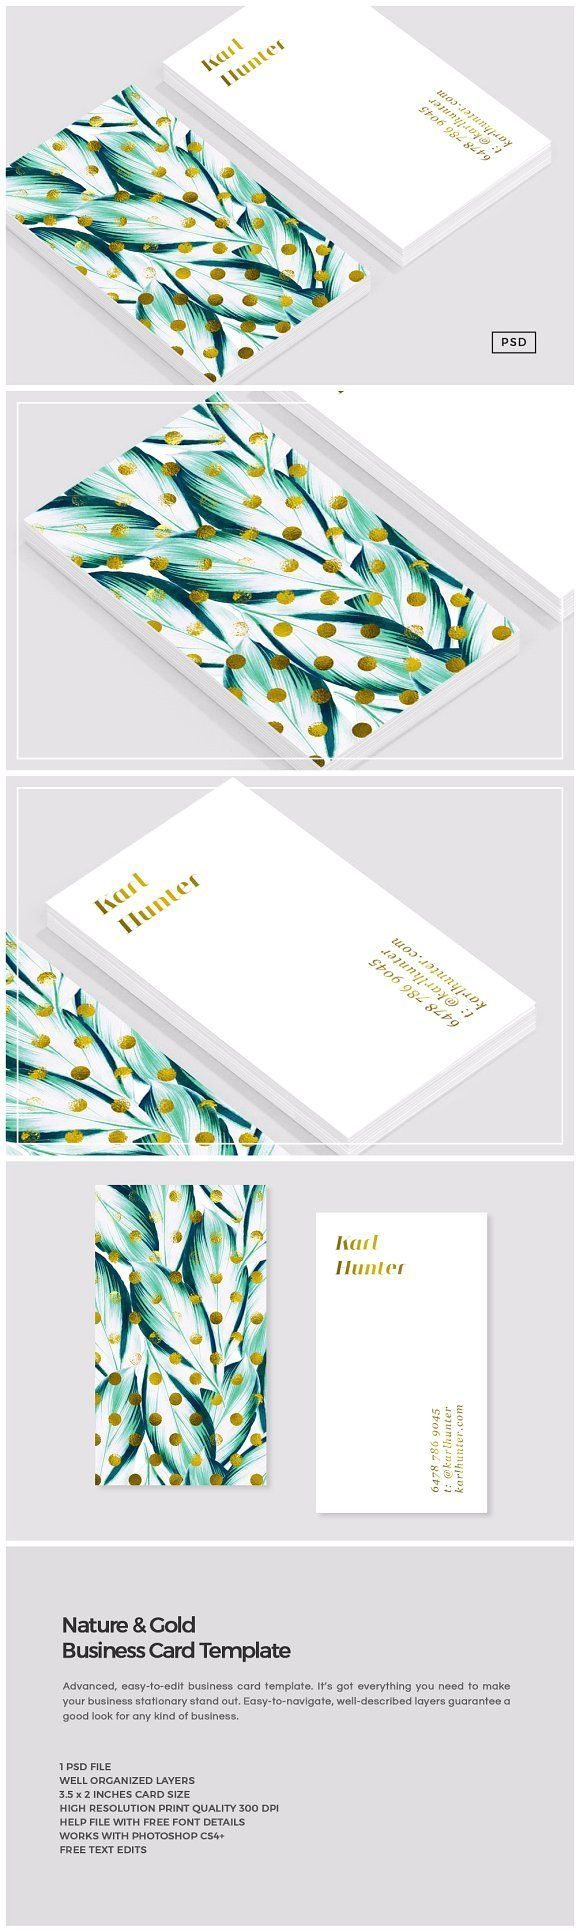 Nature & Gold Business Card Template by The Design Label on @Creative Market